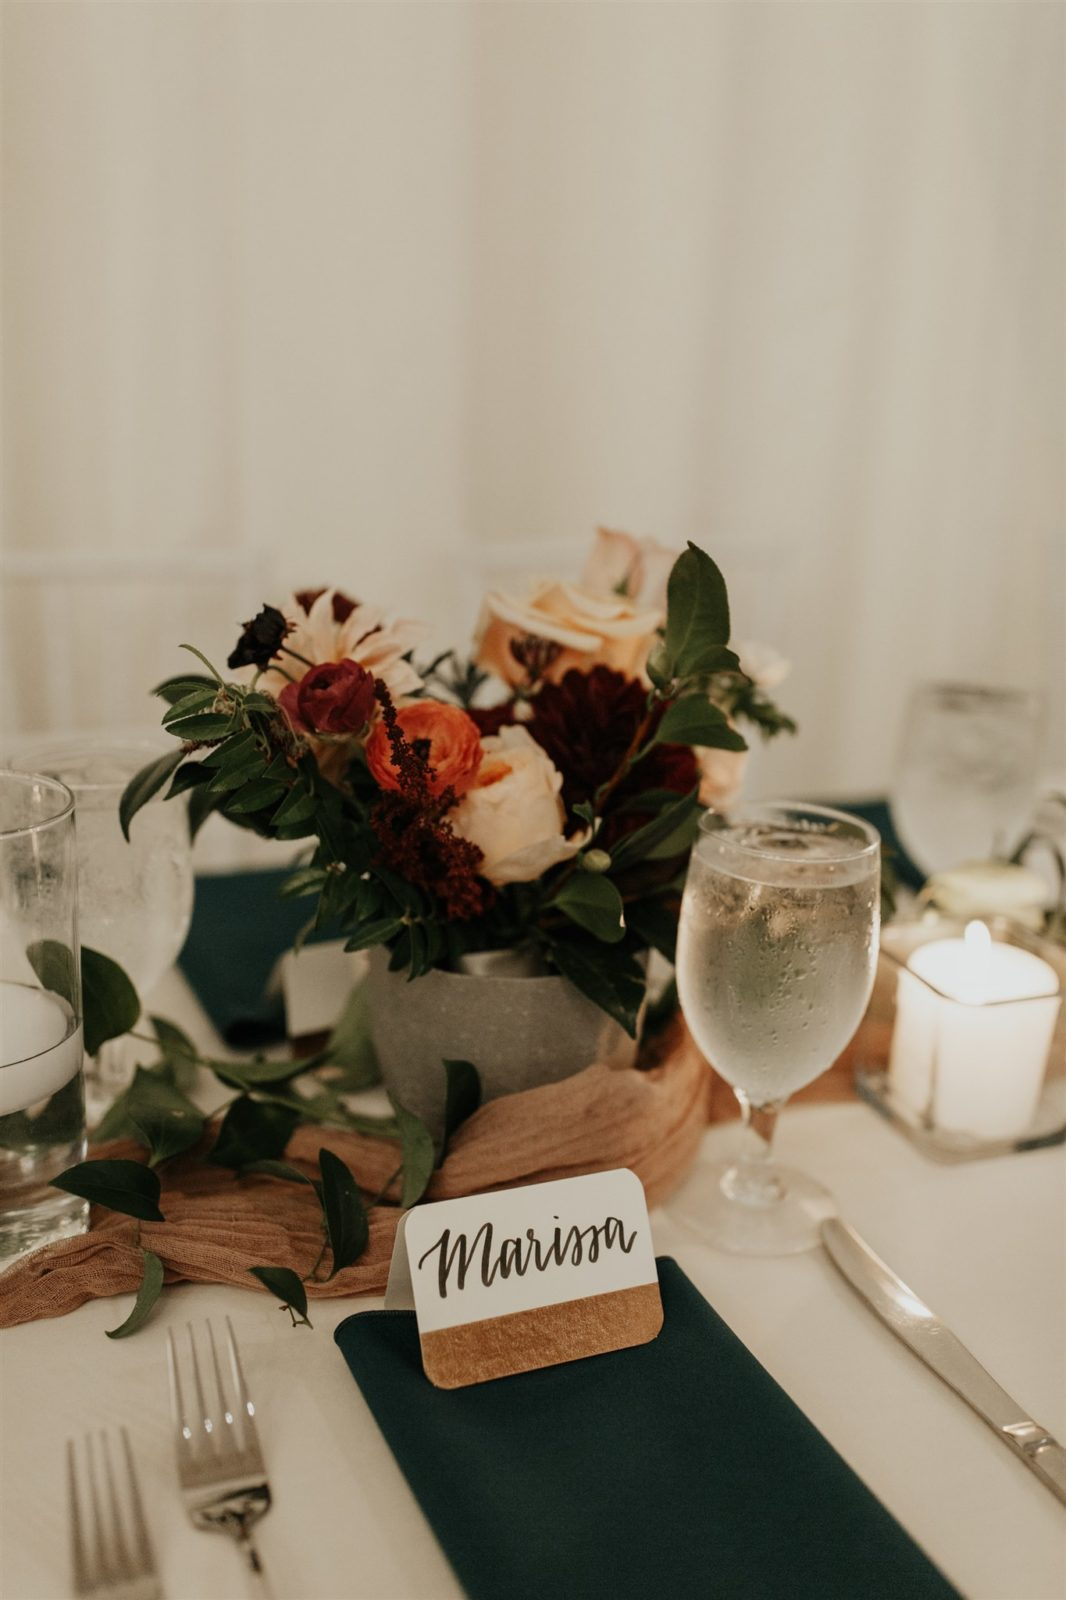 Rich Colored Wedding Centerpiece at The Hall on Dragon Wedding on Alexa Kay Events